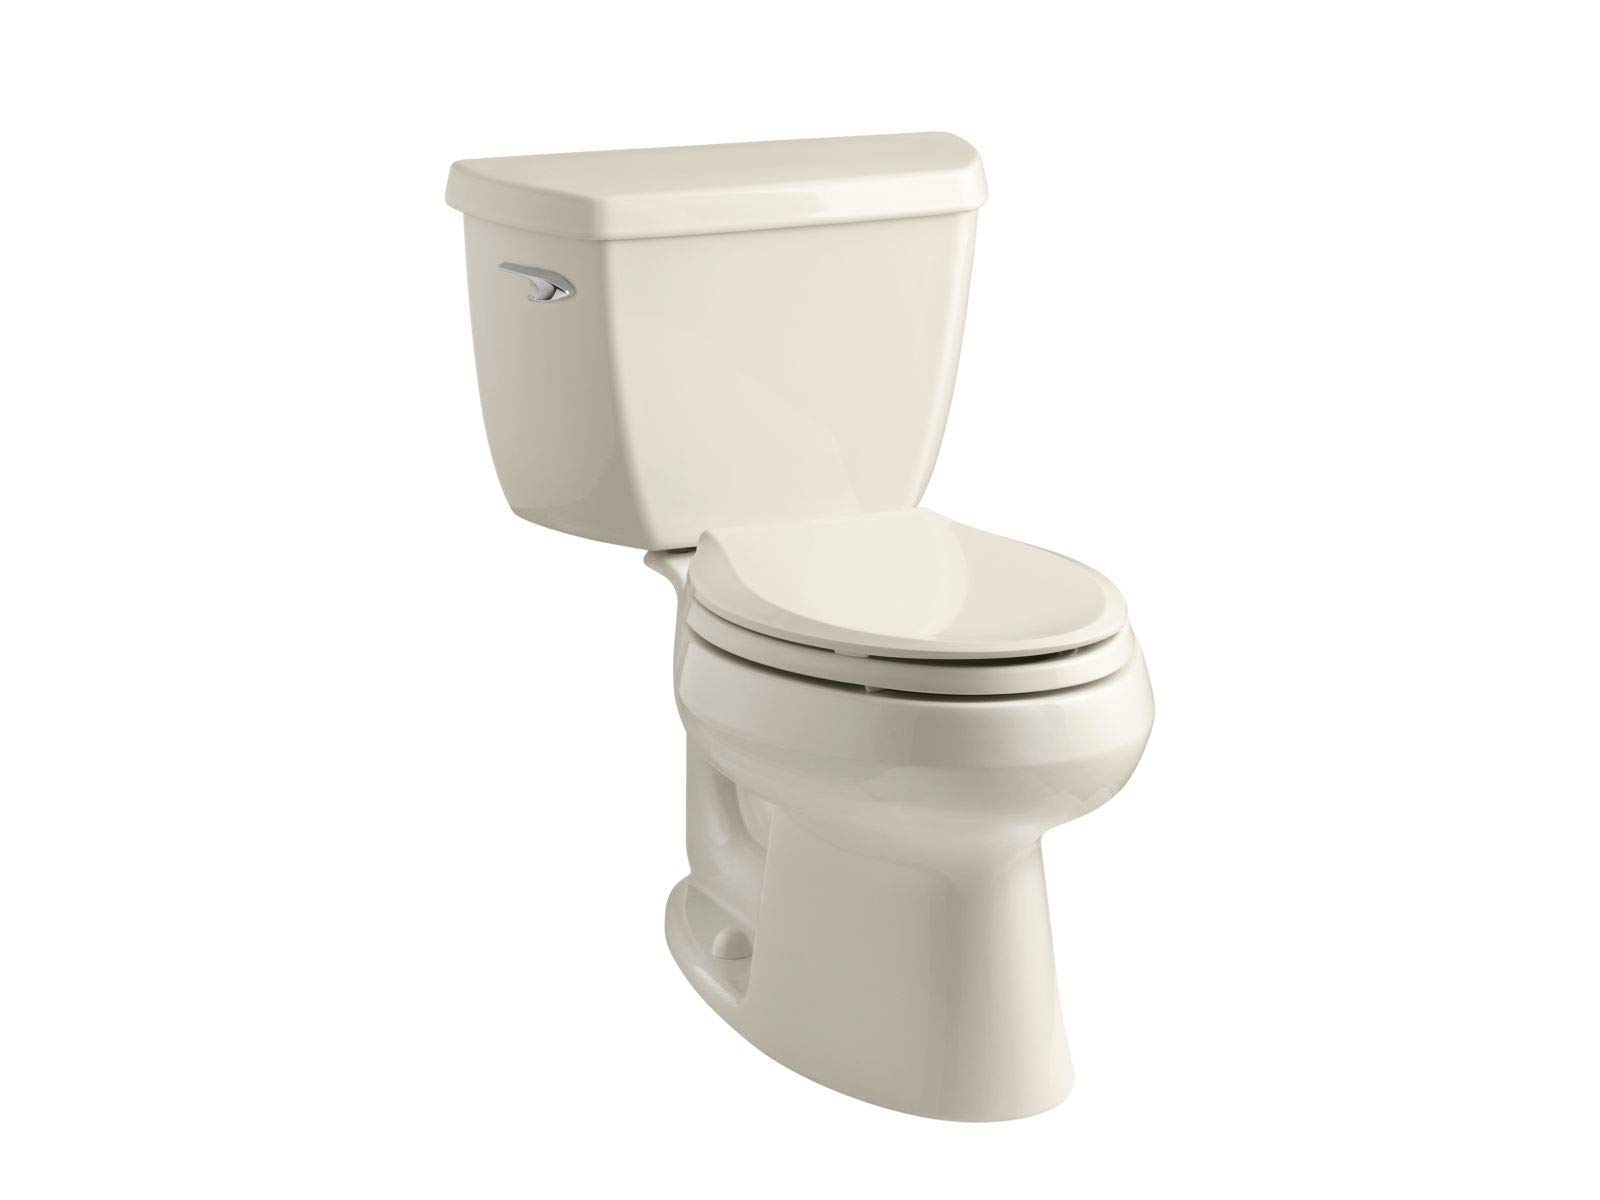 Kohler K-3575-47 Wellworth Classic 1.28 gpf Elongated Toilet with Class Five Flushing Technology and Left-Hand Trip Lever, Almond by Kohler